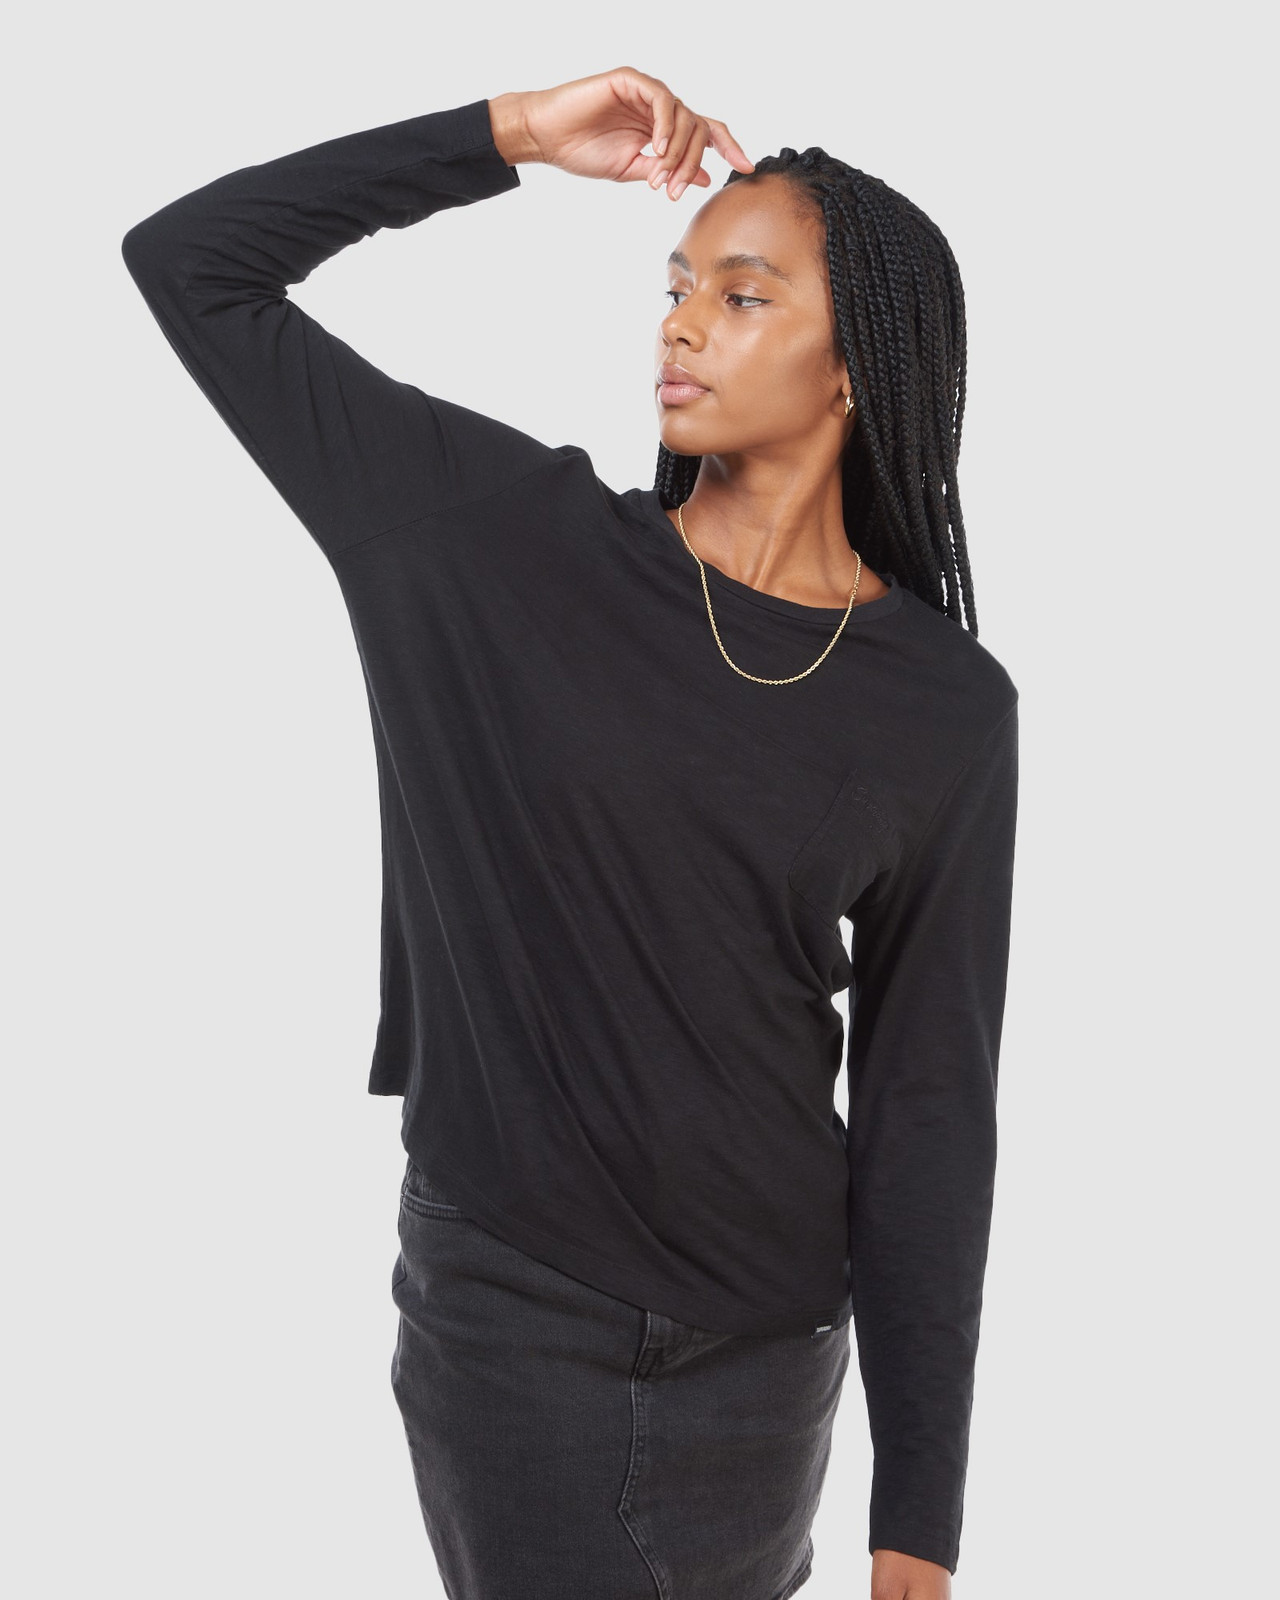 Superdry Womens SCRIPTED L/S CREW TOP Black Long Sleeve Top 2